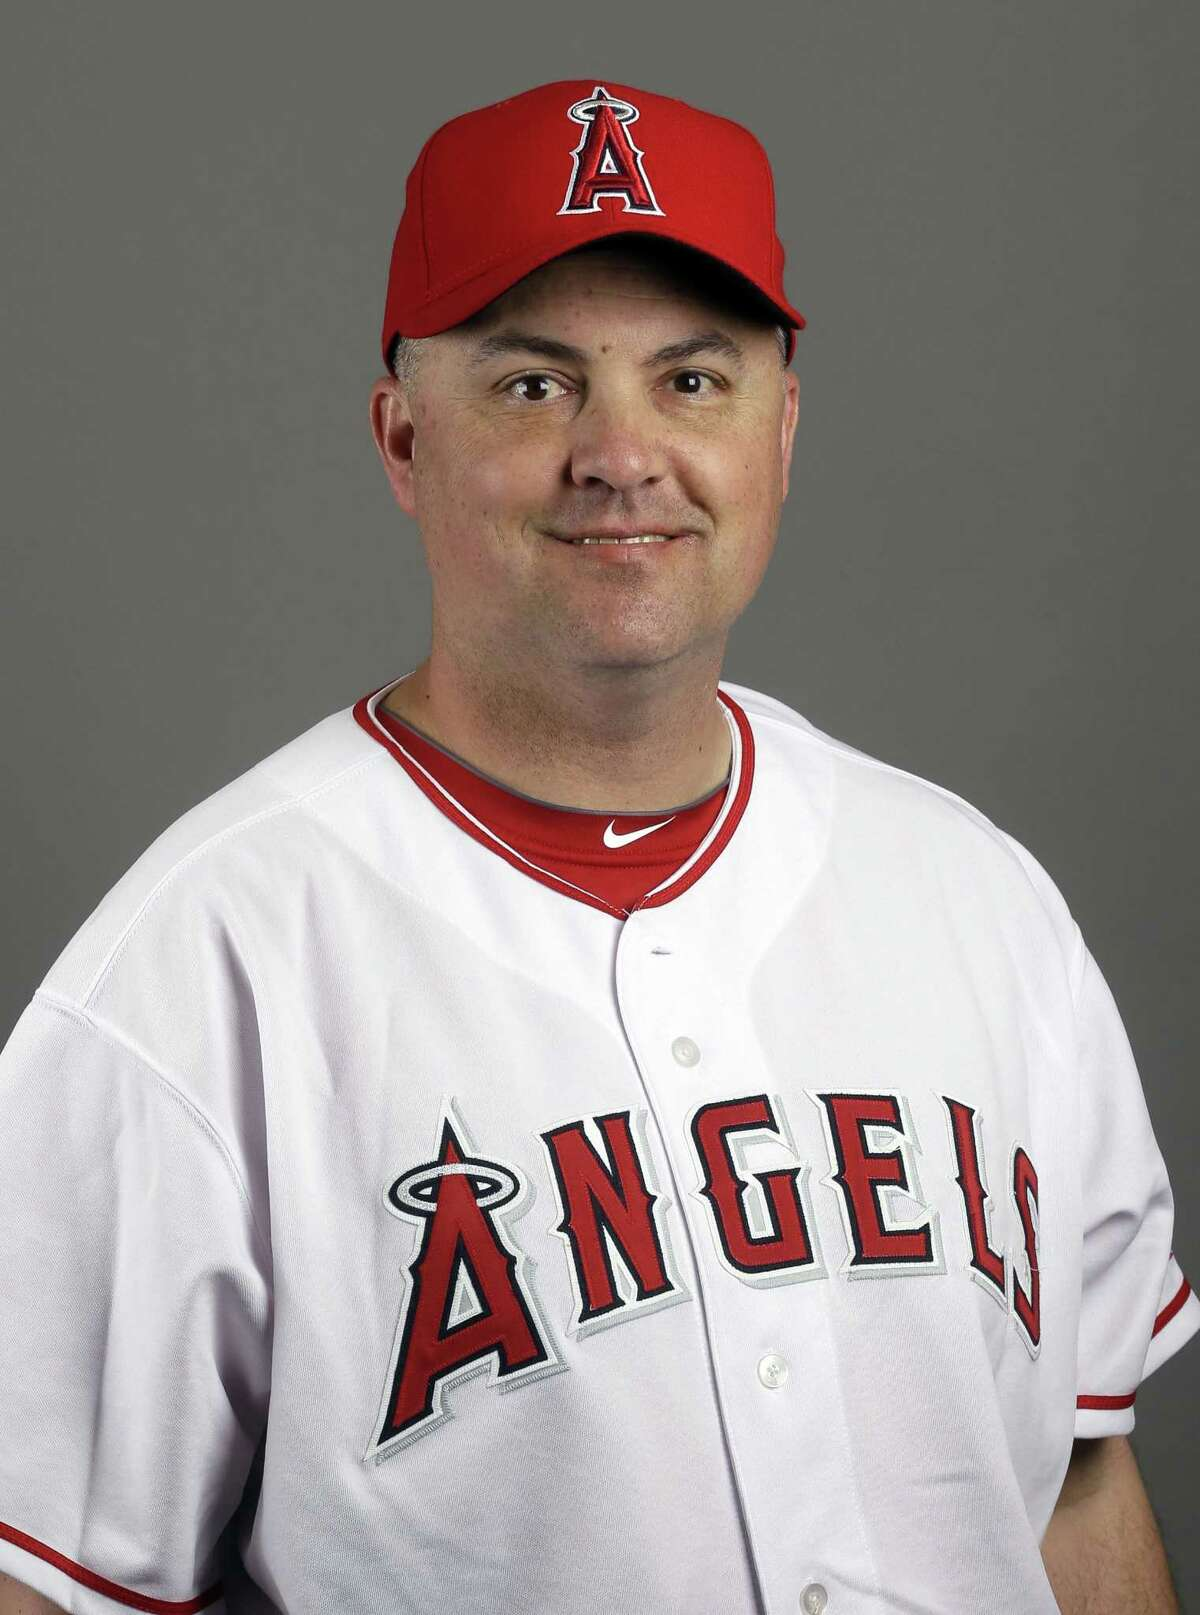 Los Angeles Angels coach Rico Brogna is back with the team following surgery for testicular cancer.